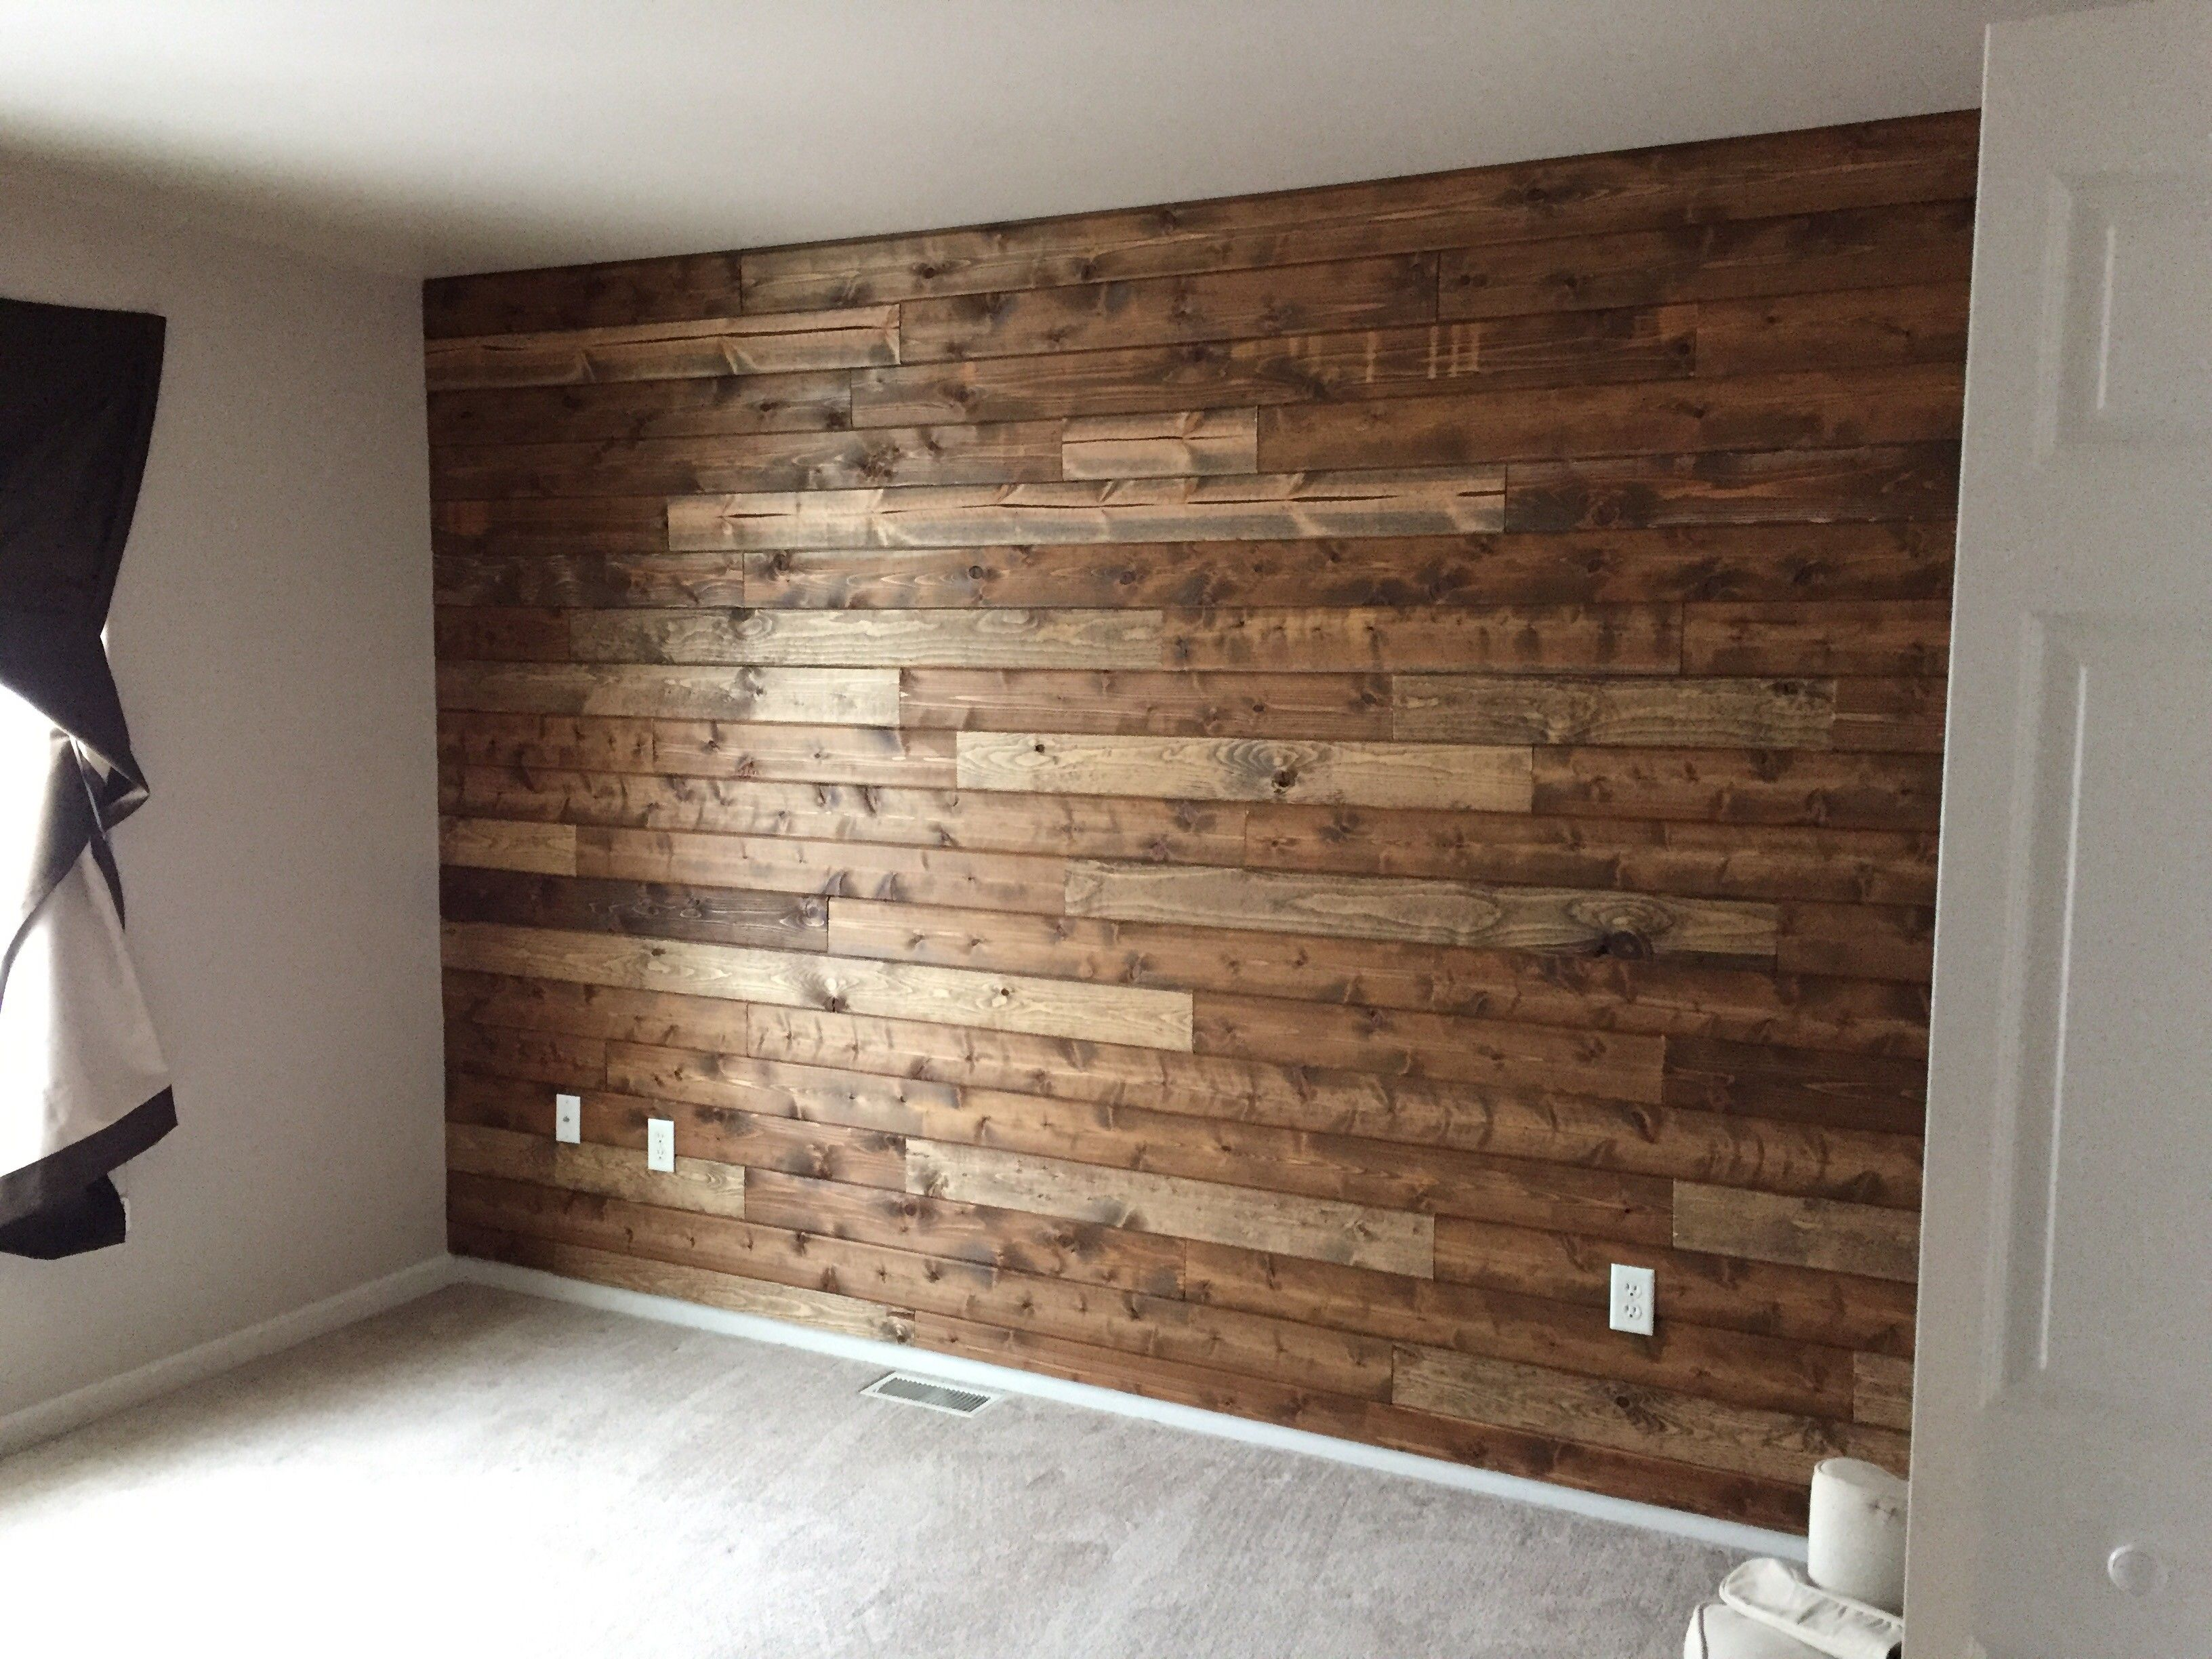 100 Diy Pallet Wall Ideas For Your Apartment Flooring On Walls